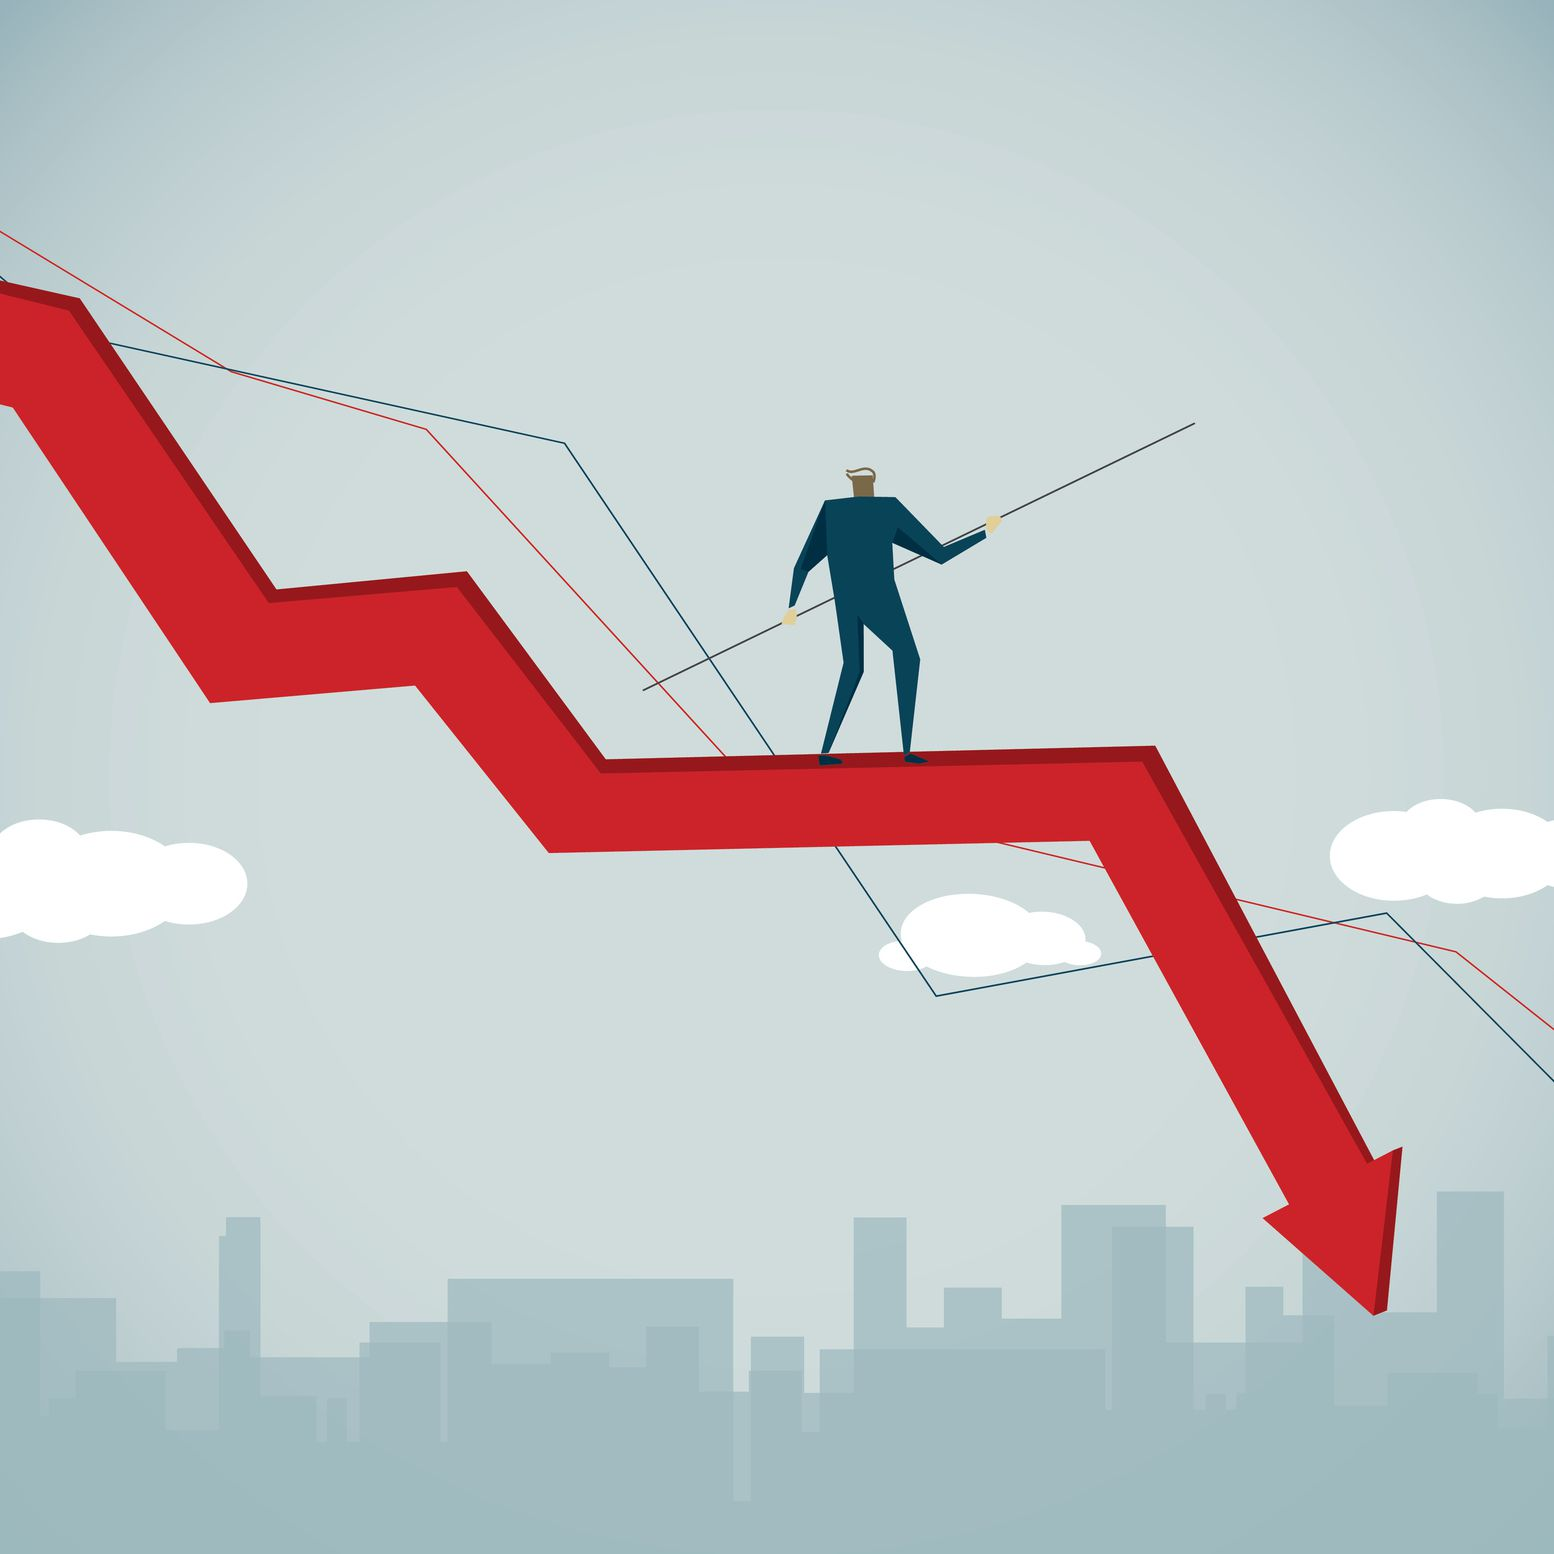 How to Bet on a Country's Economic Decline